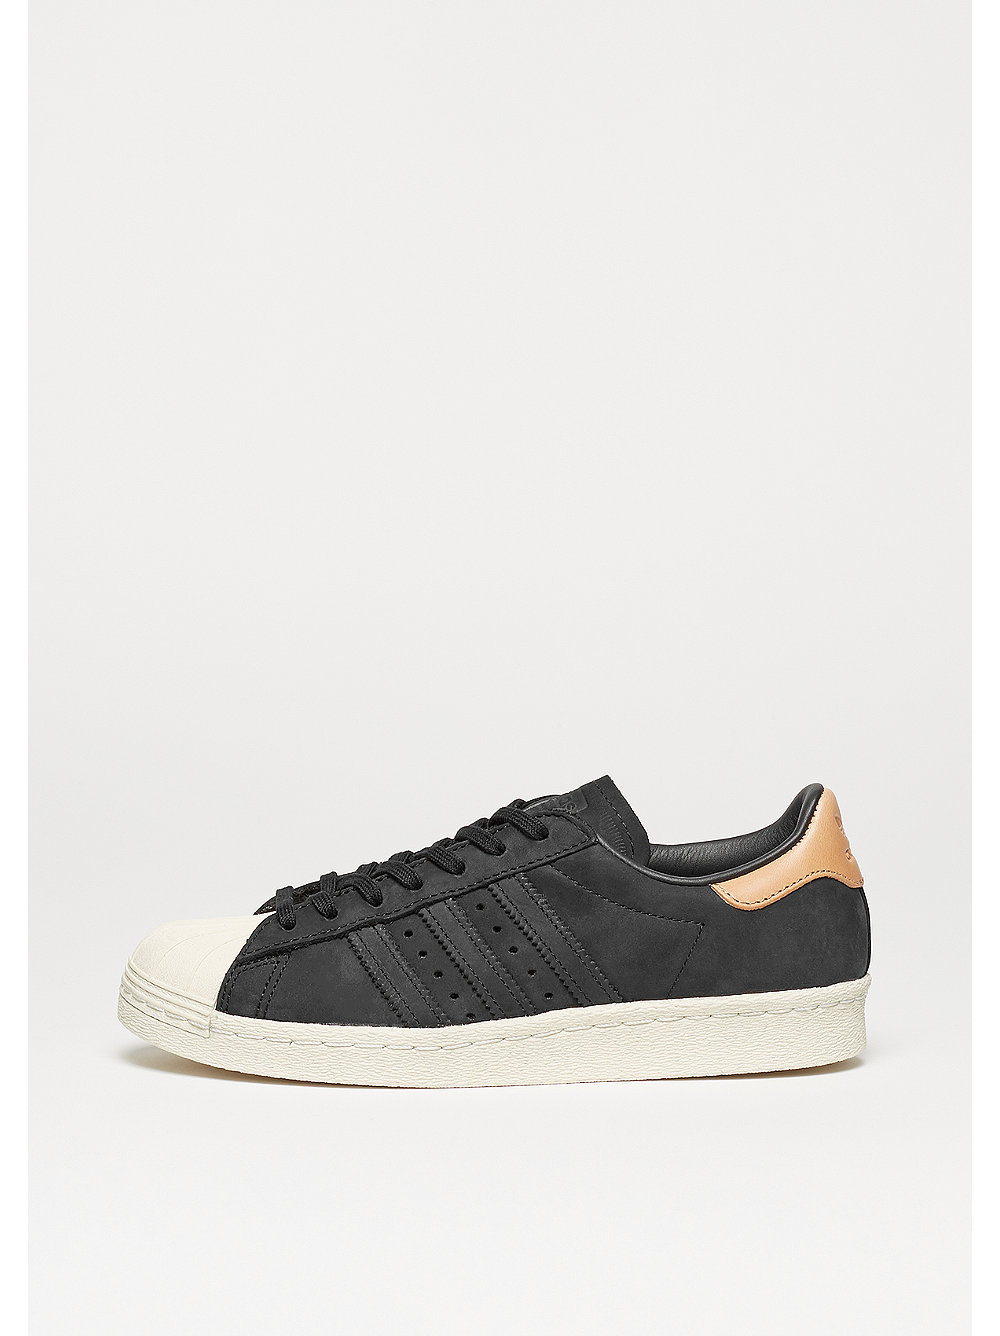 adidas Superstar 80s core black-core black-off white